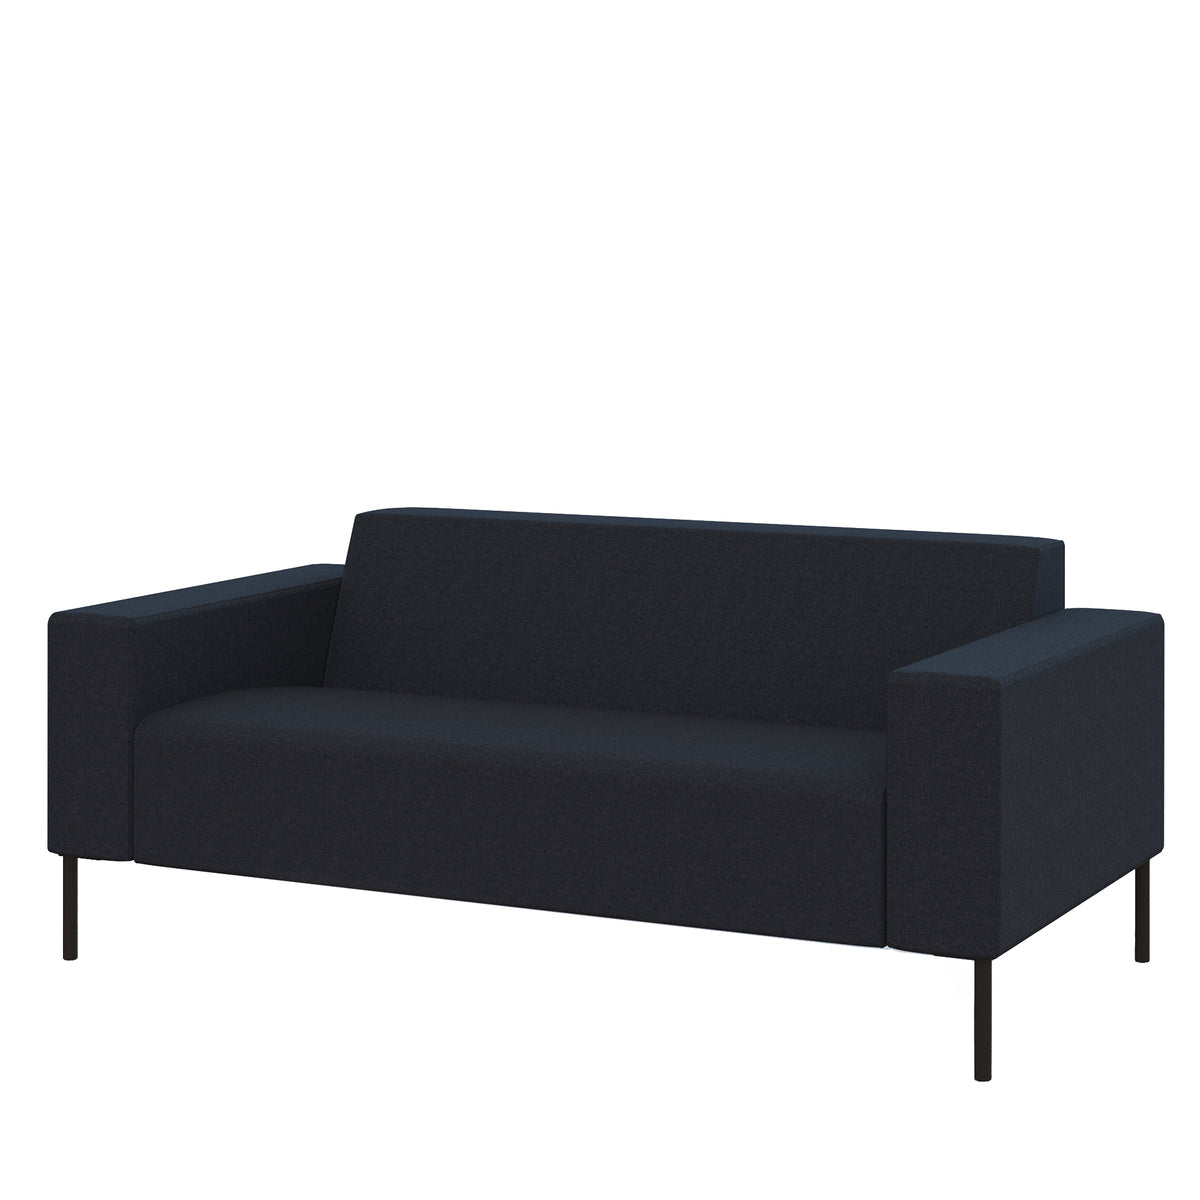 Hitch Mylius HM18 Origin Two Seat Sofa Black Legs Tower